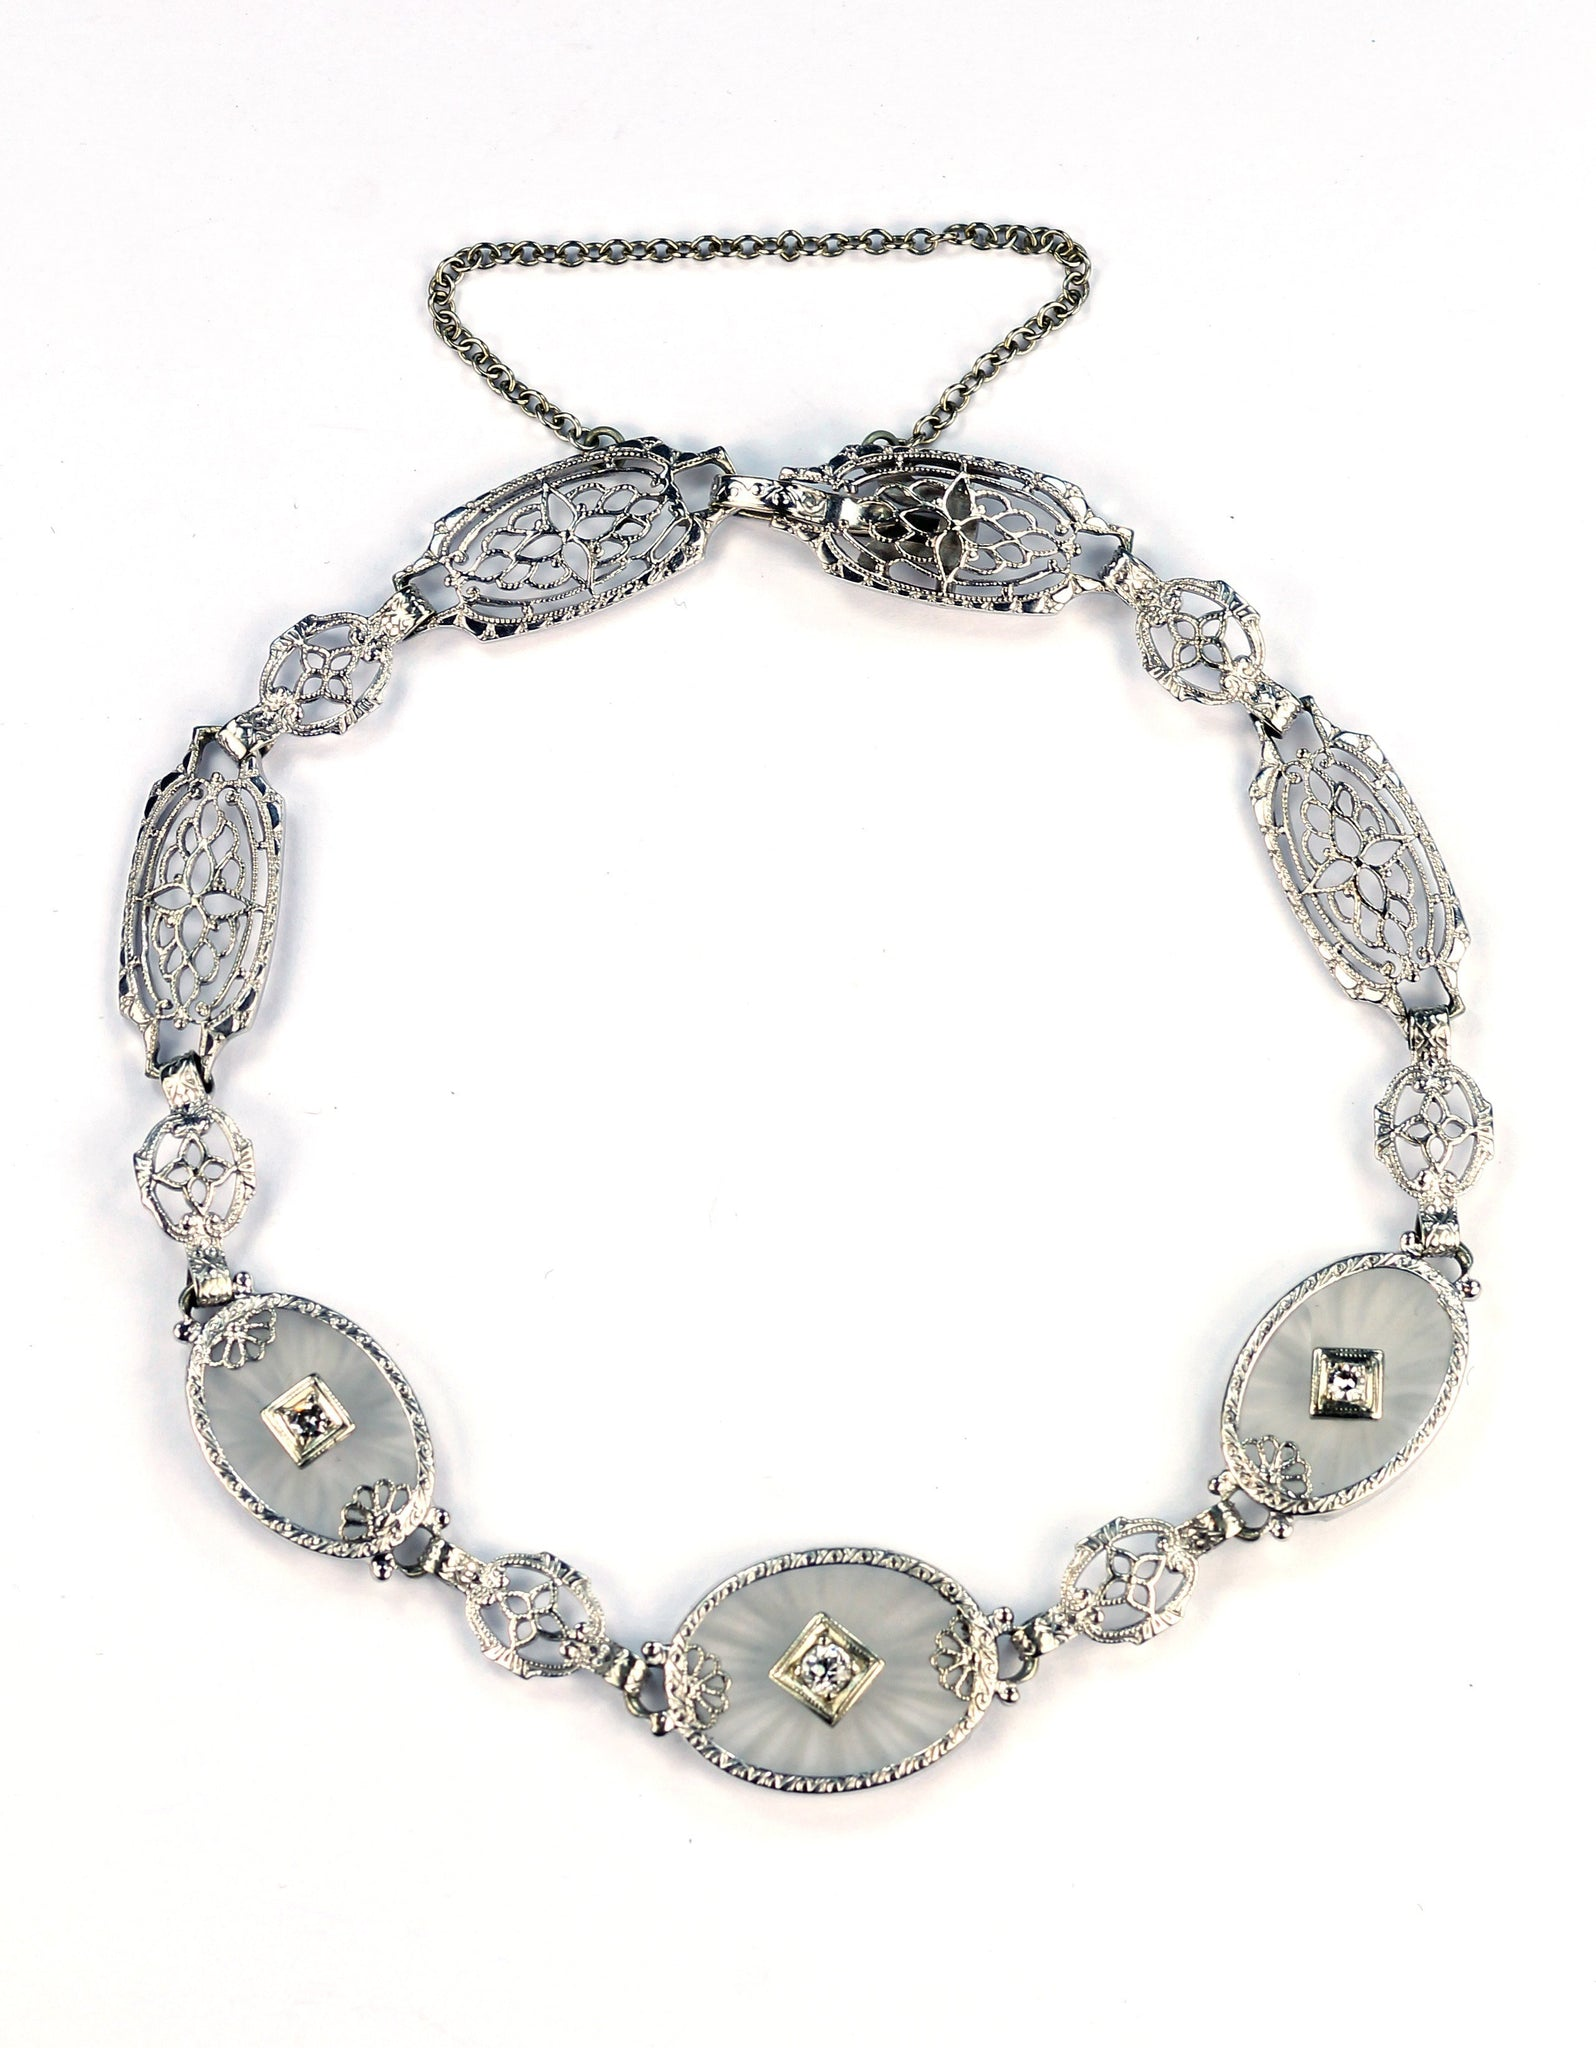 Vintage Rock Crystal and Diamond Bracelet, SOLD